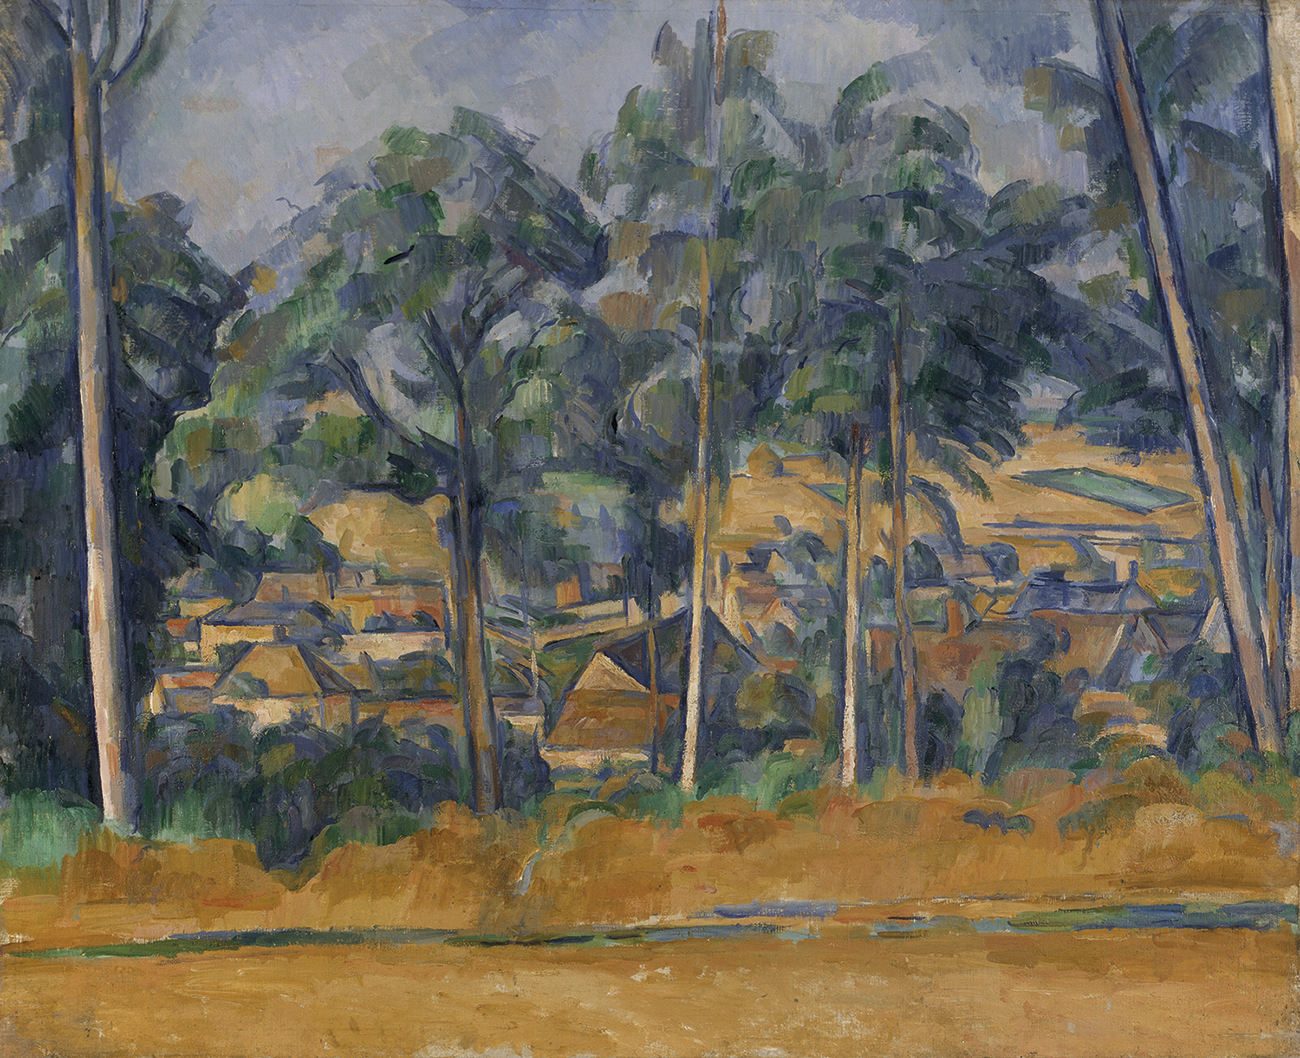 Village through the Trees | Paul Cézanne | Guggenheim Bilbao Museoa